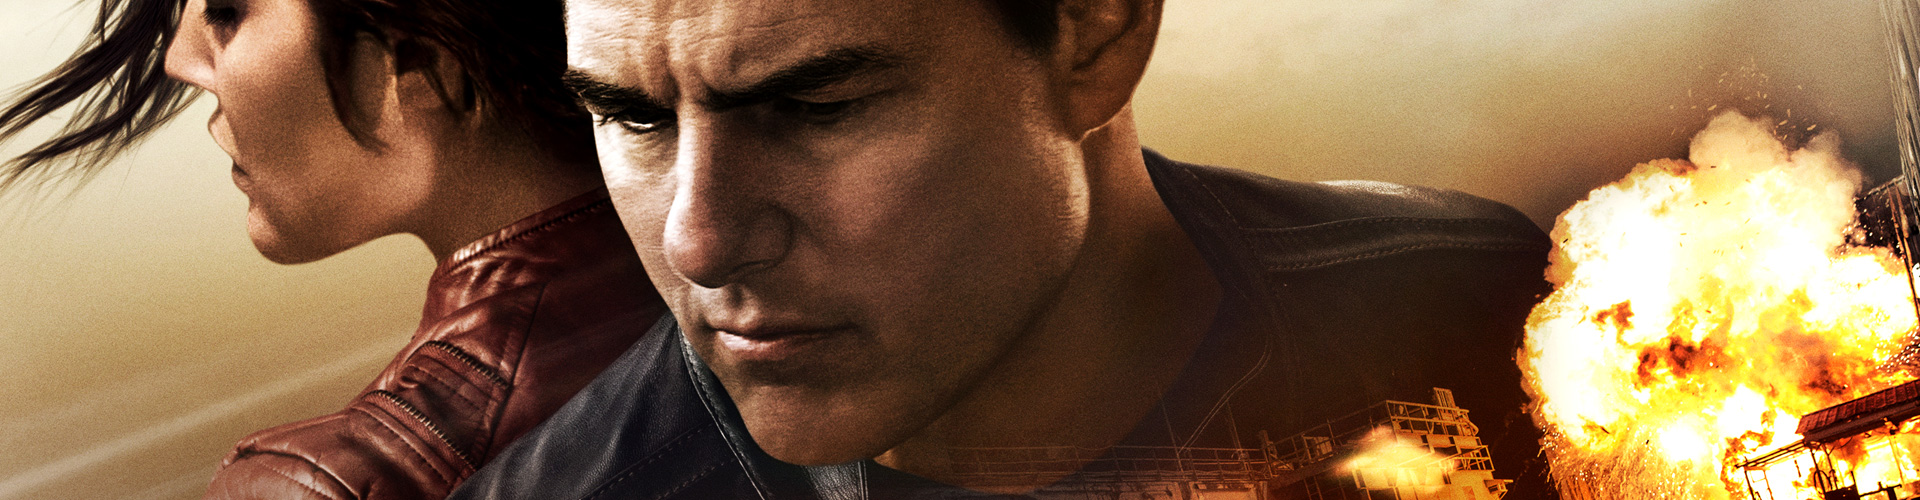 jack-reacher-header.jpg